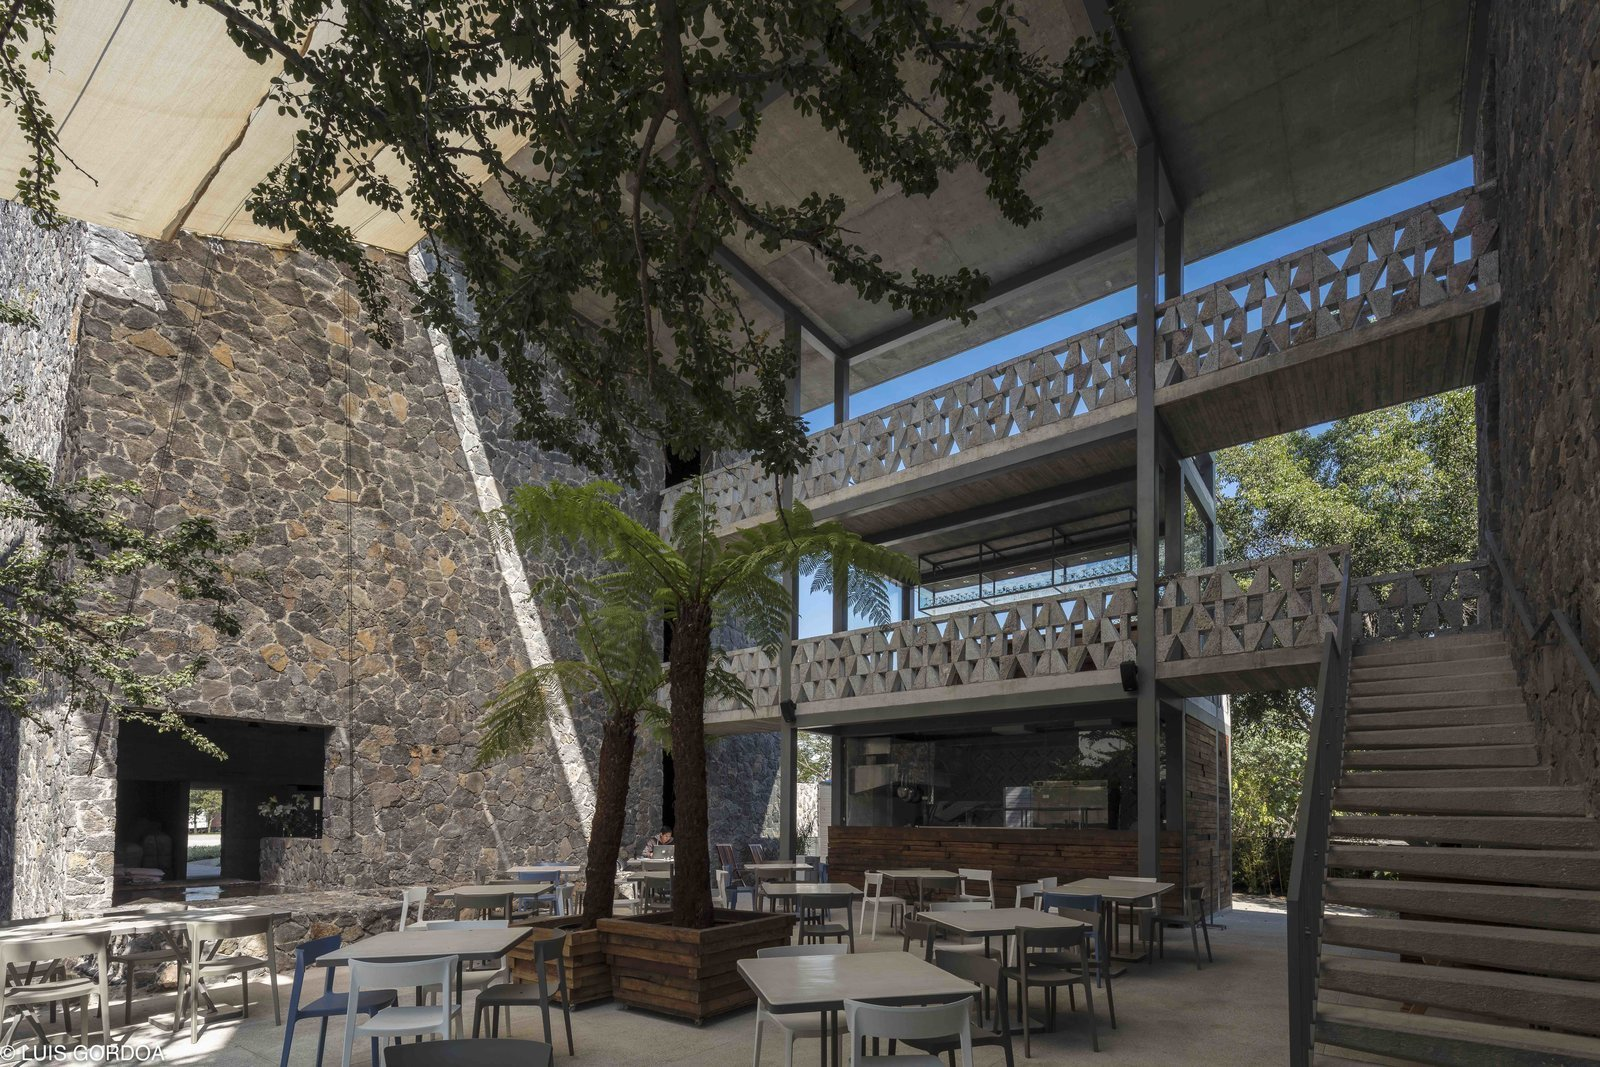 Hotel Huayacan, designed by Mexican architect Alfredo Cano of T3arc is a 40-room hotel that combines brutalist forms with robust local stone.